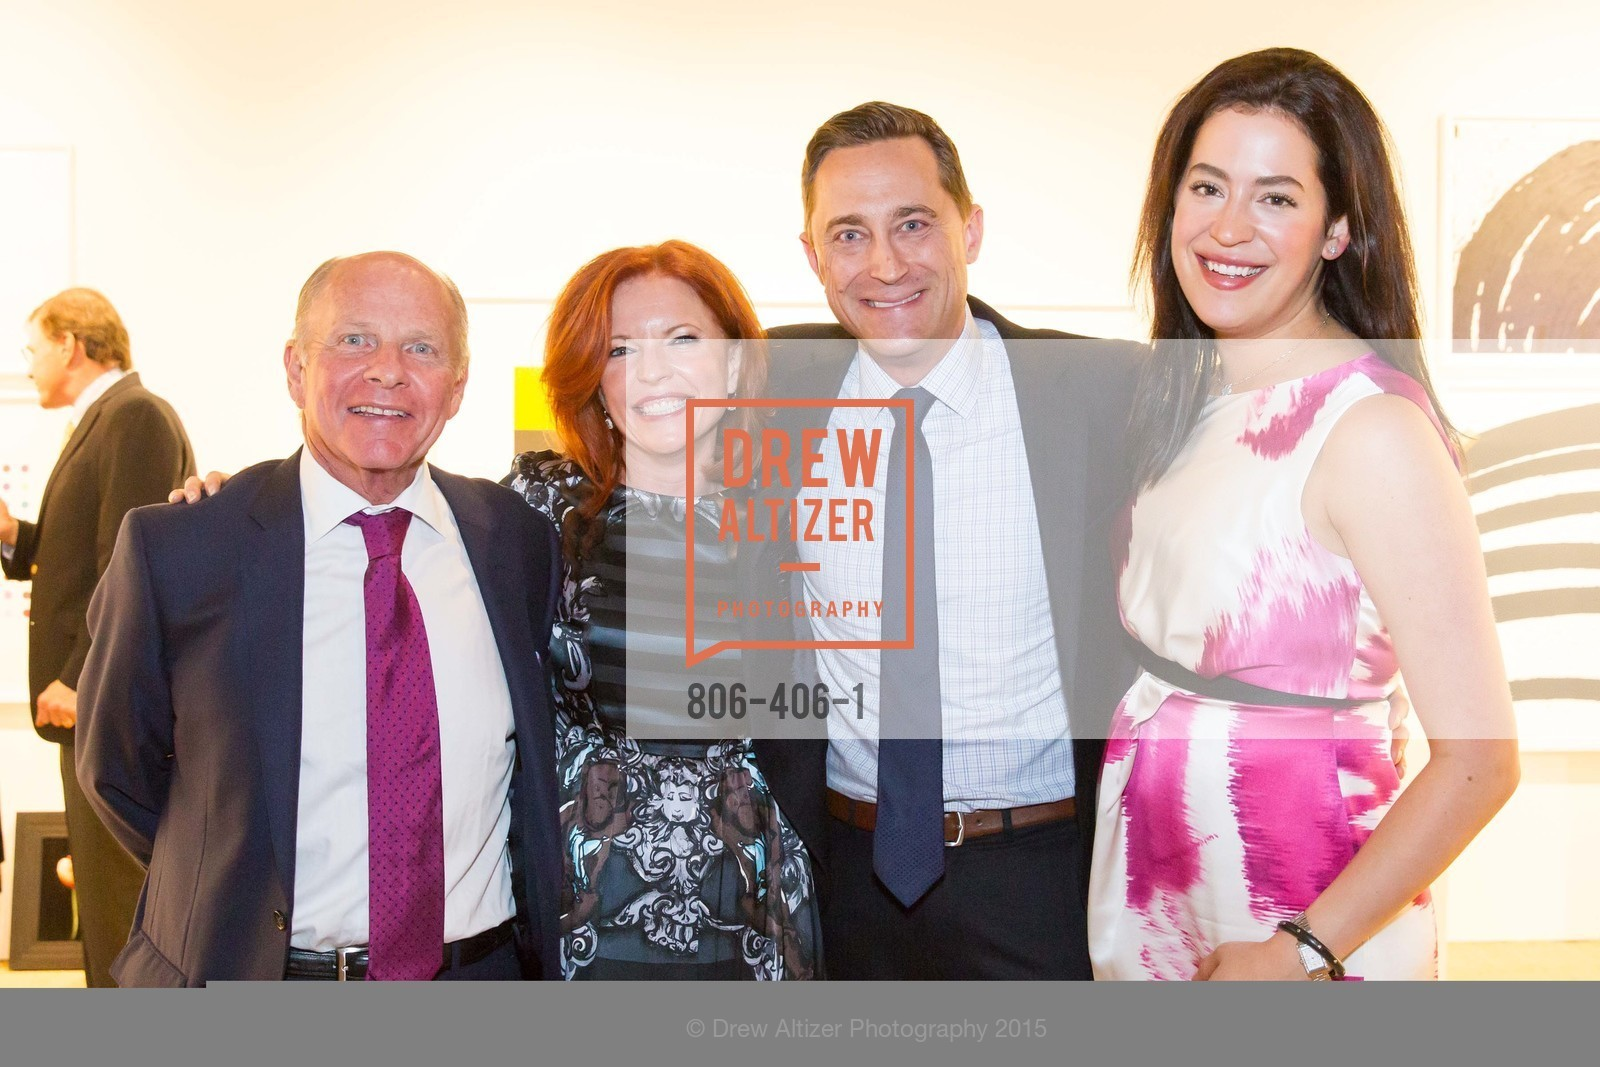 John Berggruen, Elaine Ascher, Sean Livingston, Becky Ascher, The San Francisco Fall Antiques Show, Festival Pavilion, Fort Mason, October 21st, 2015,Drew Altizer, Drew Altizer Photography, full-service event agency, private events, San Francisco photographer, photographer California